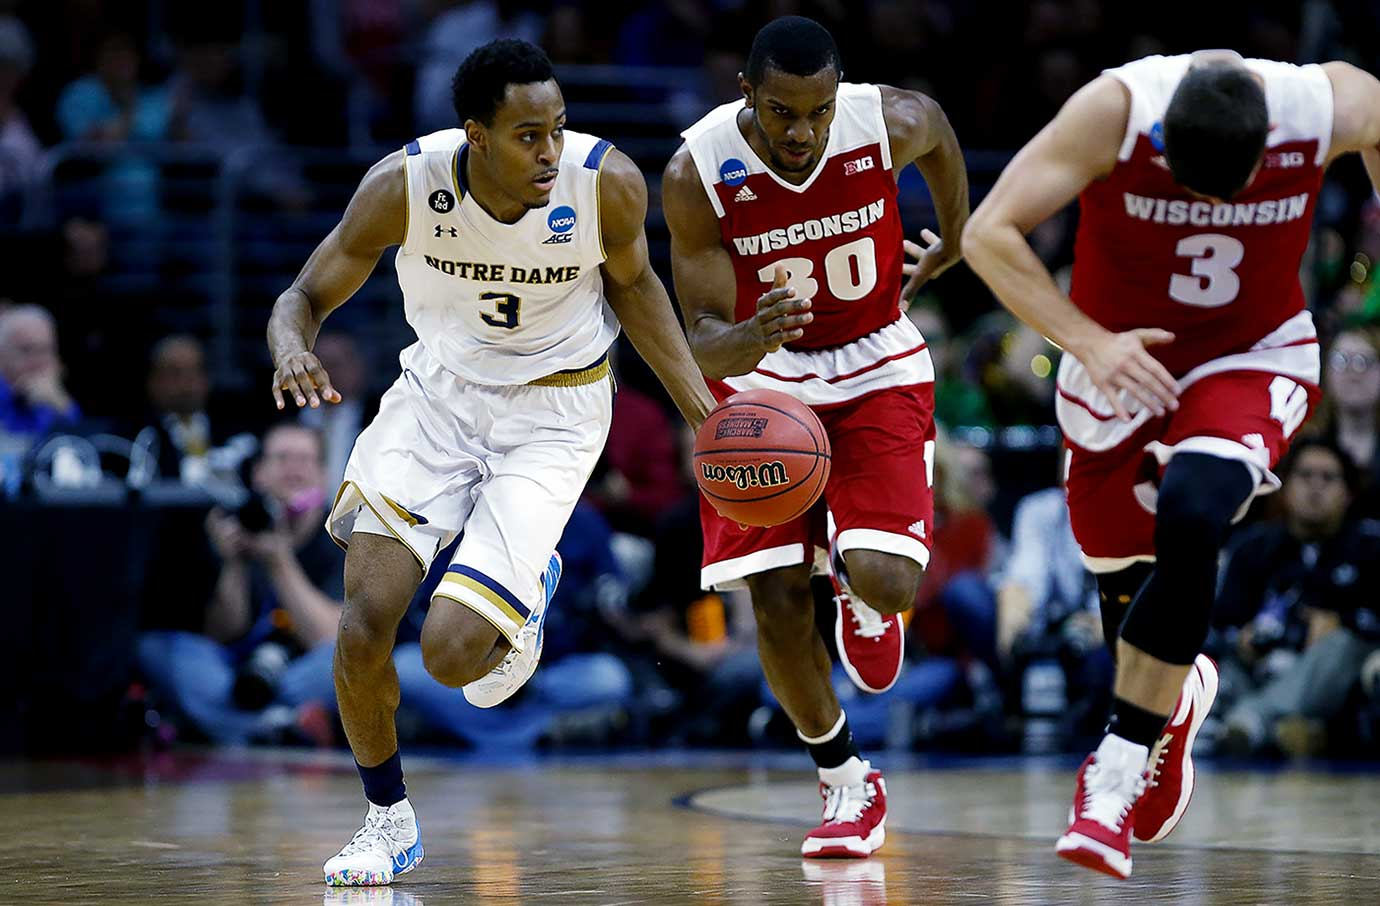 Notre Dame scored 10 points in the final 46 seconds to make up for a 23-19 halftime deficit.